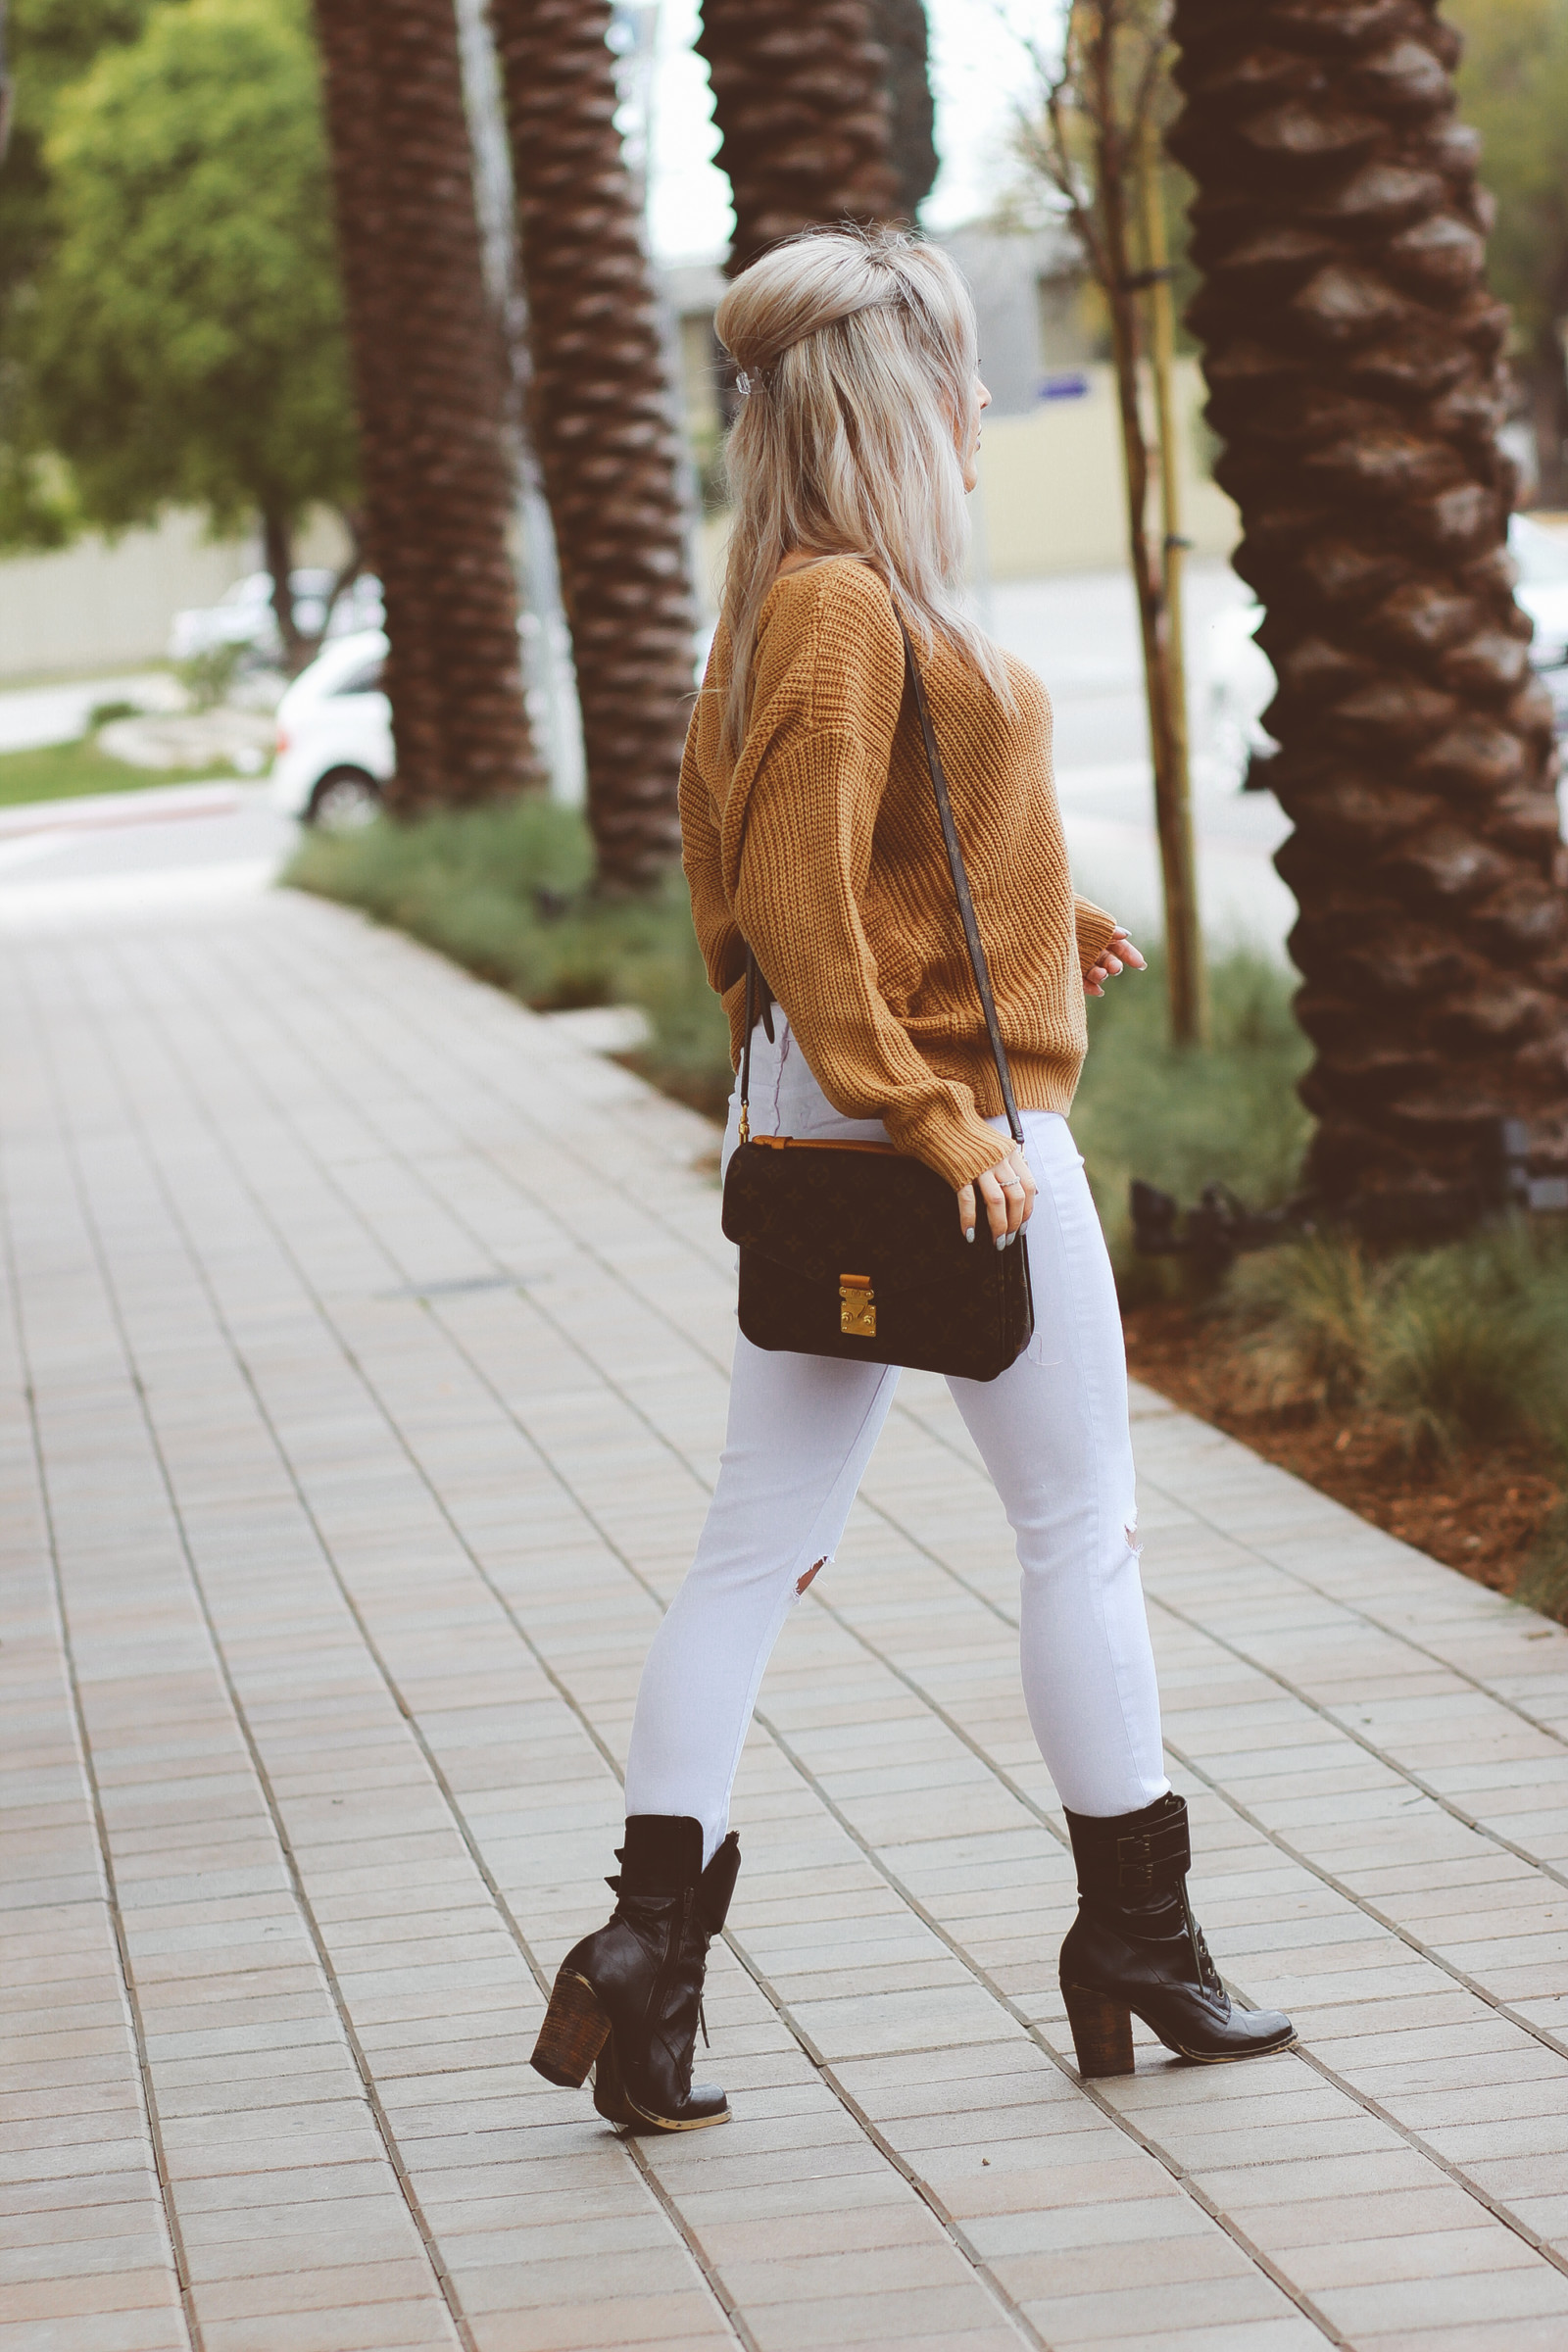 Blondie in the City | White Ripped Jeans by @tractrjeans | Brown Oversized Sweater | Louis Vuitton Pochette Metis